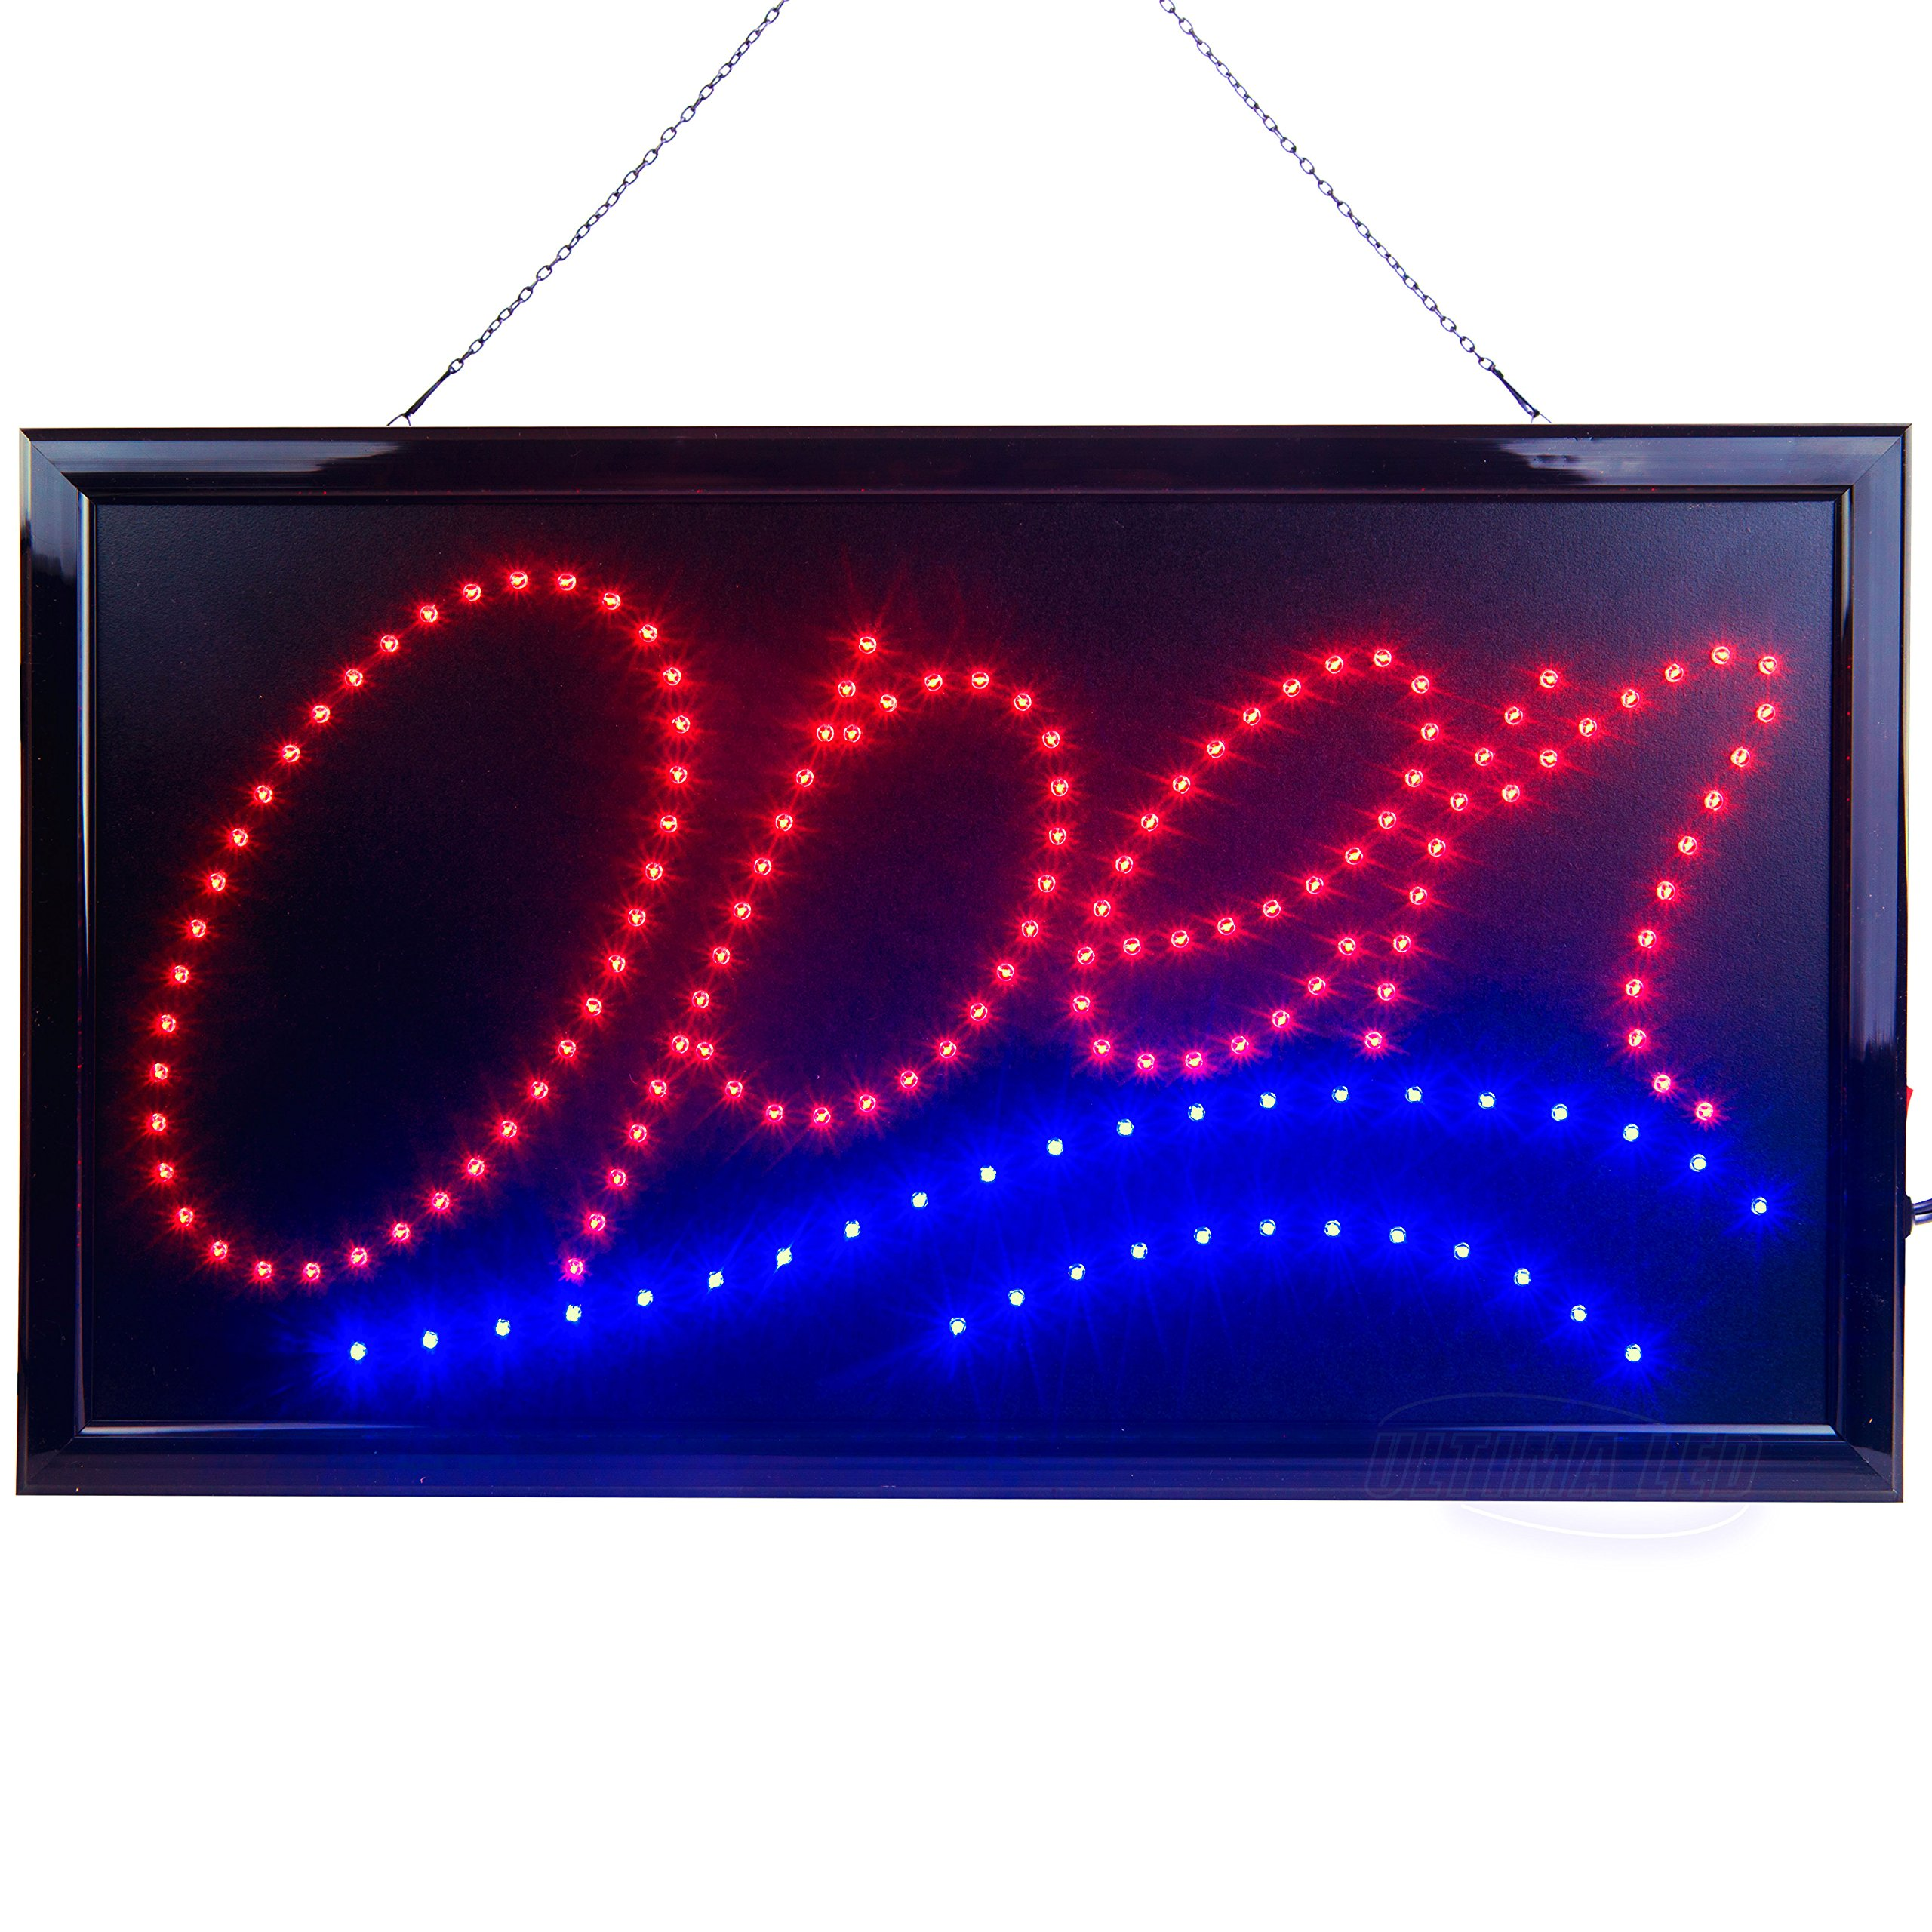 Large LED Open Sign for Business Displays: Jumbo Light Up Sign Open with 2 Flashing Modes | Electronic Lighted Signs for Bars, Liquor Stores | No use of Toxic Neon (24'' x 13'', Model 1) by Ultima LED